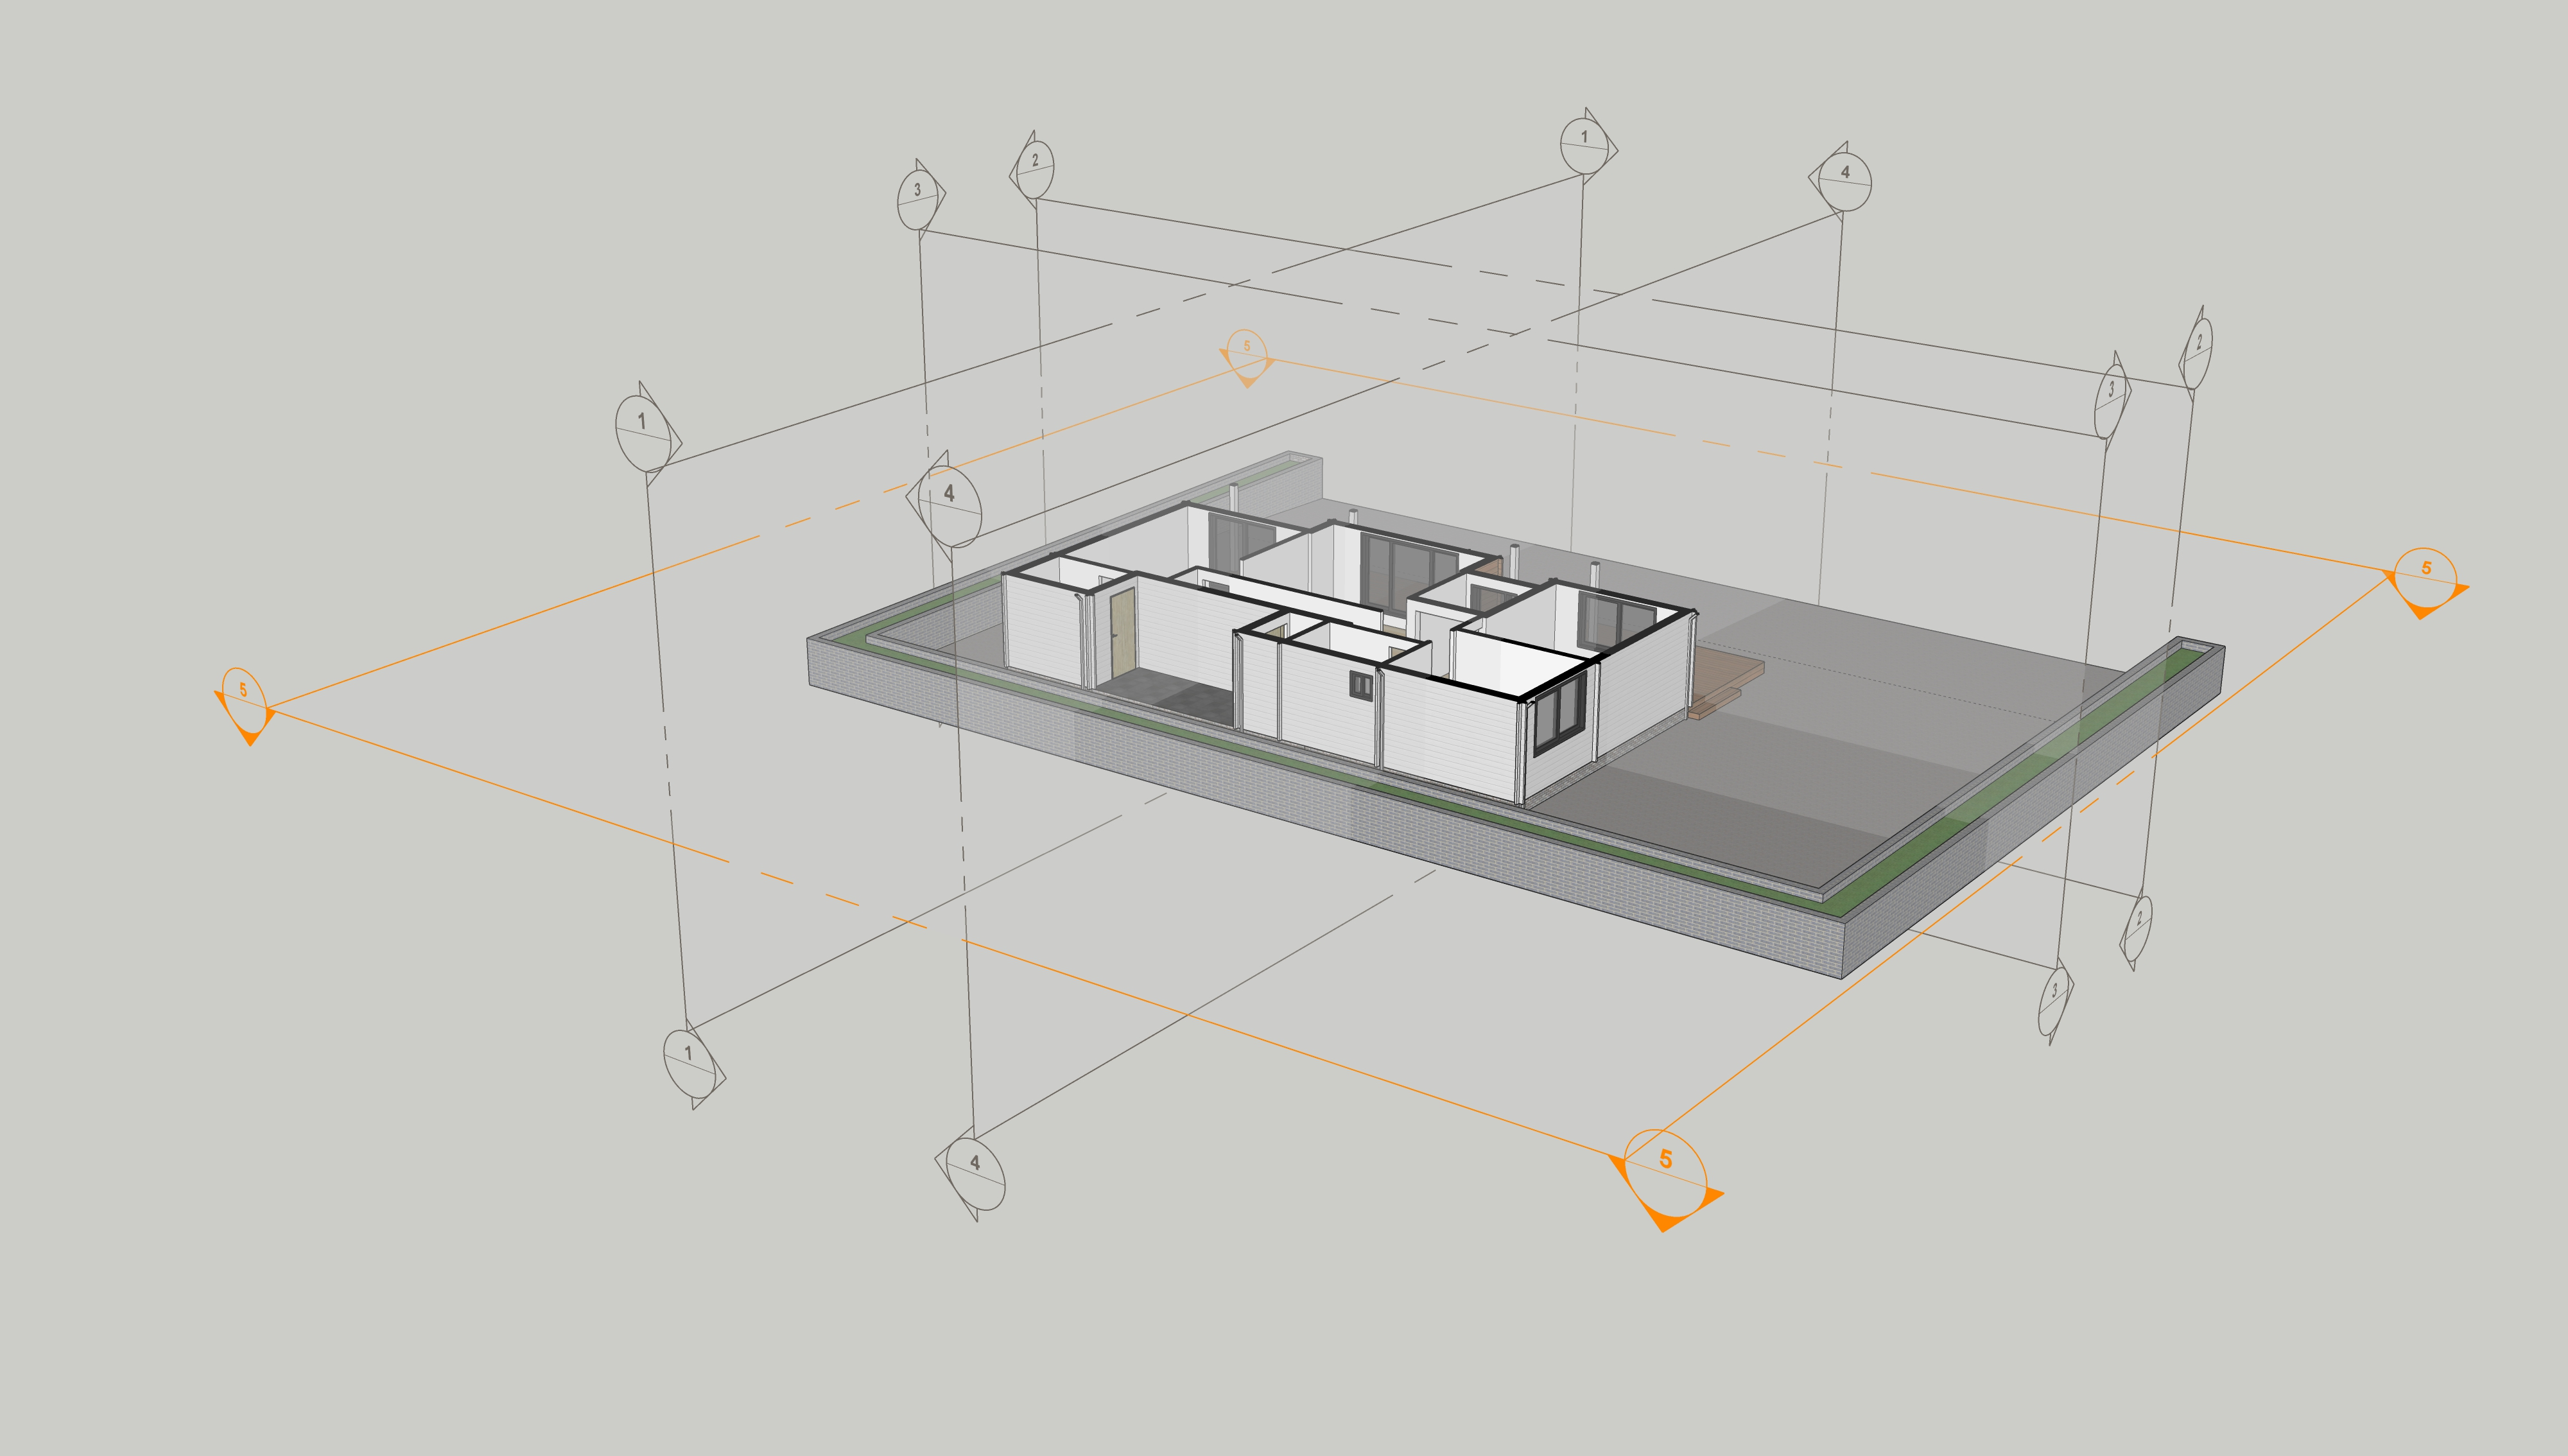 Cutting plan and sections in SketchUp